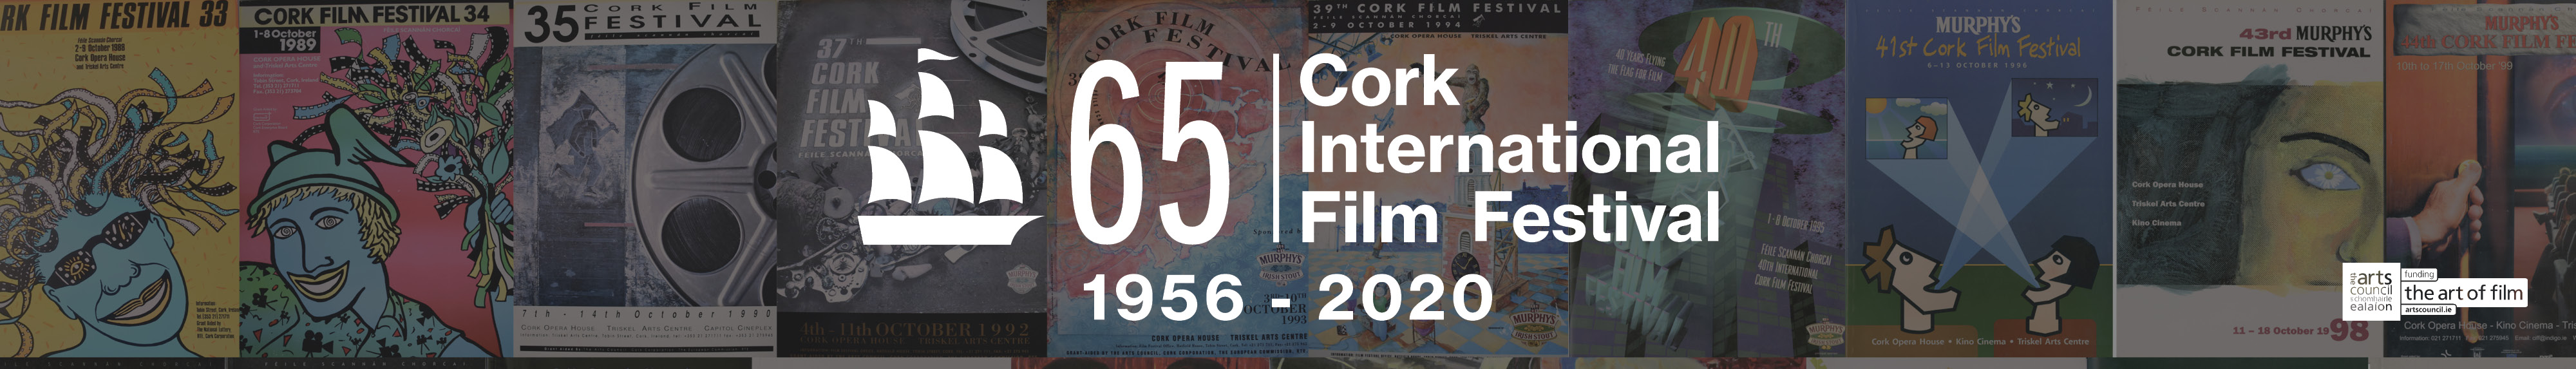 Cork International Film Festival Festival Club